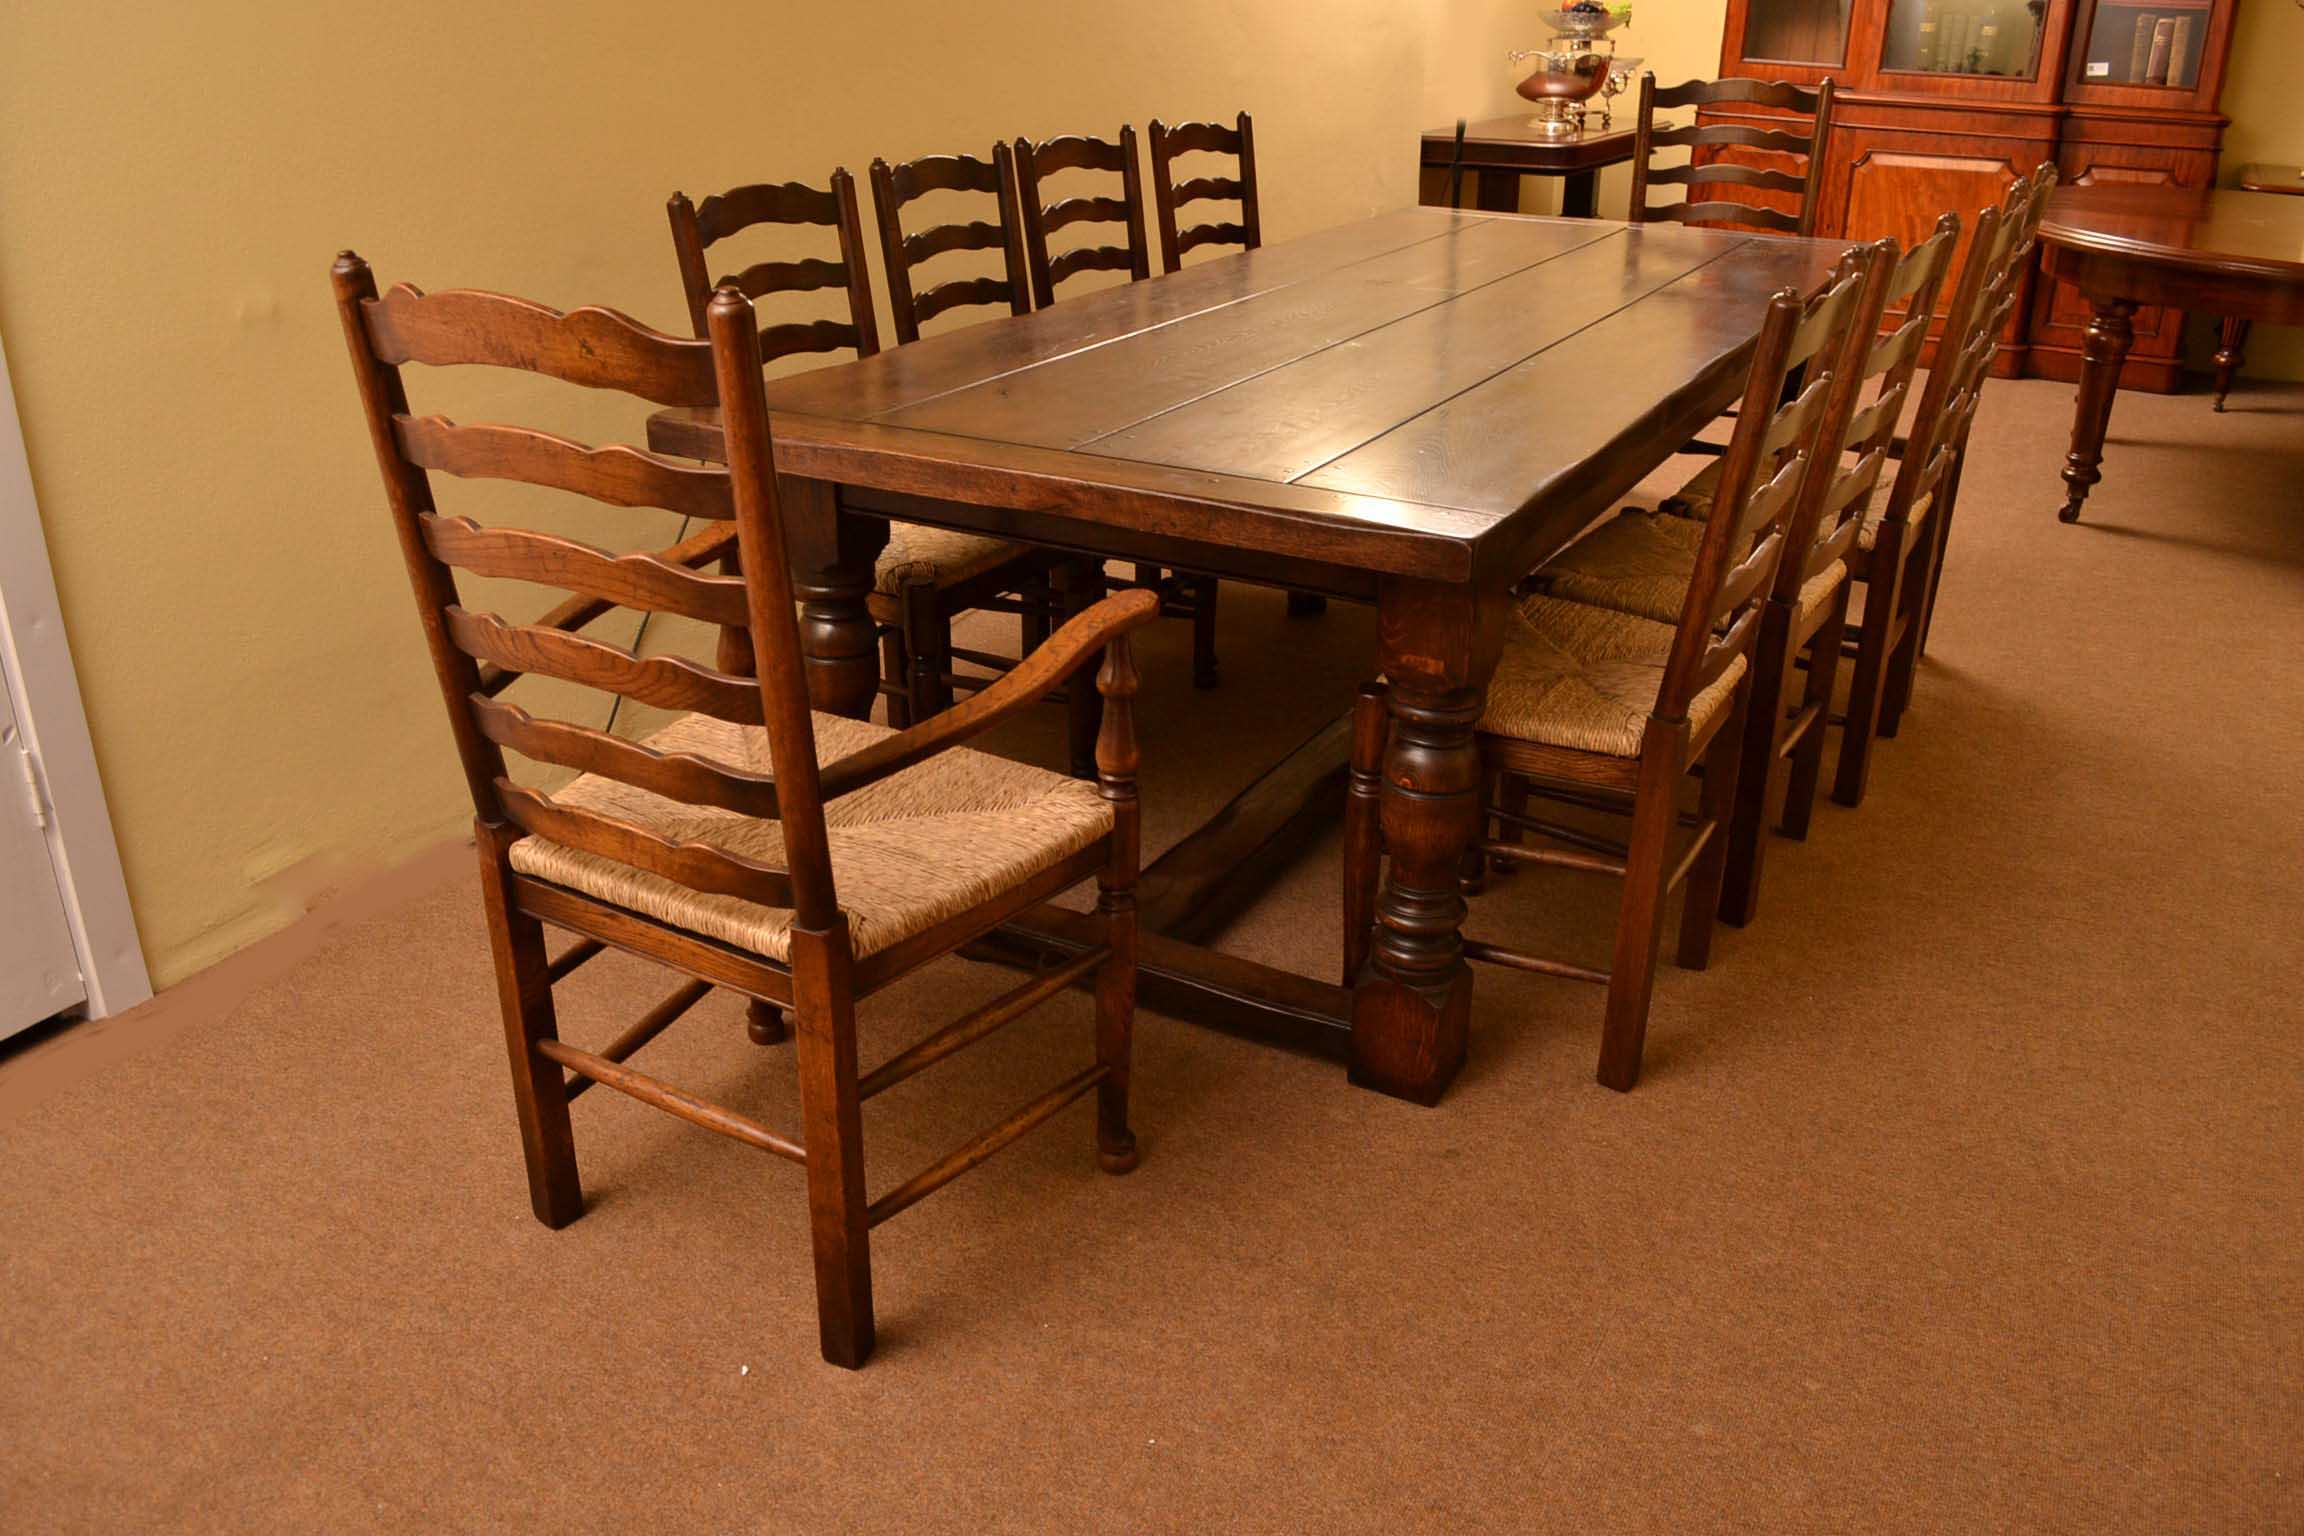 Bespoke Solid Oak Refectory Dining Table And 10 Chairs For